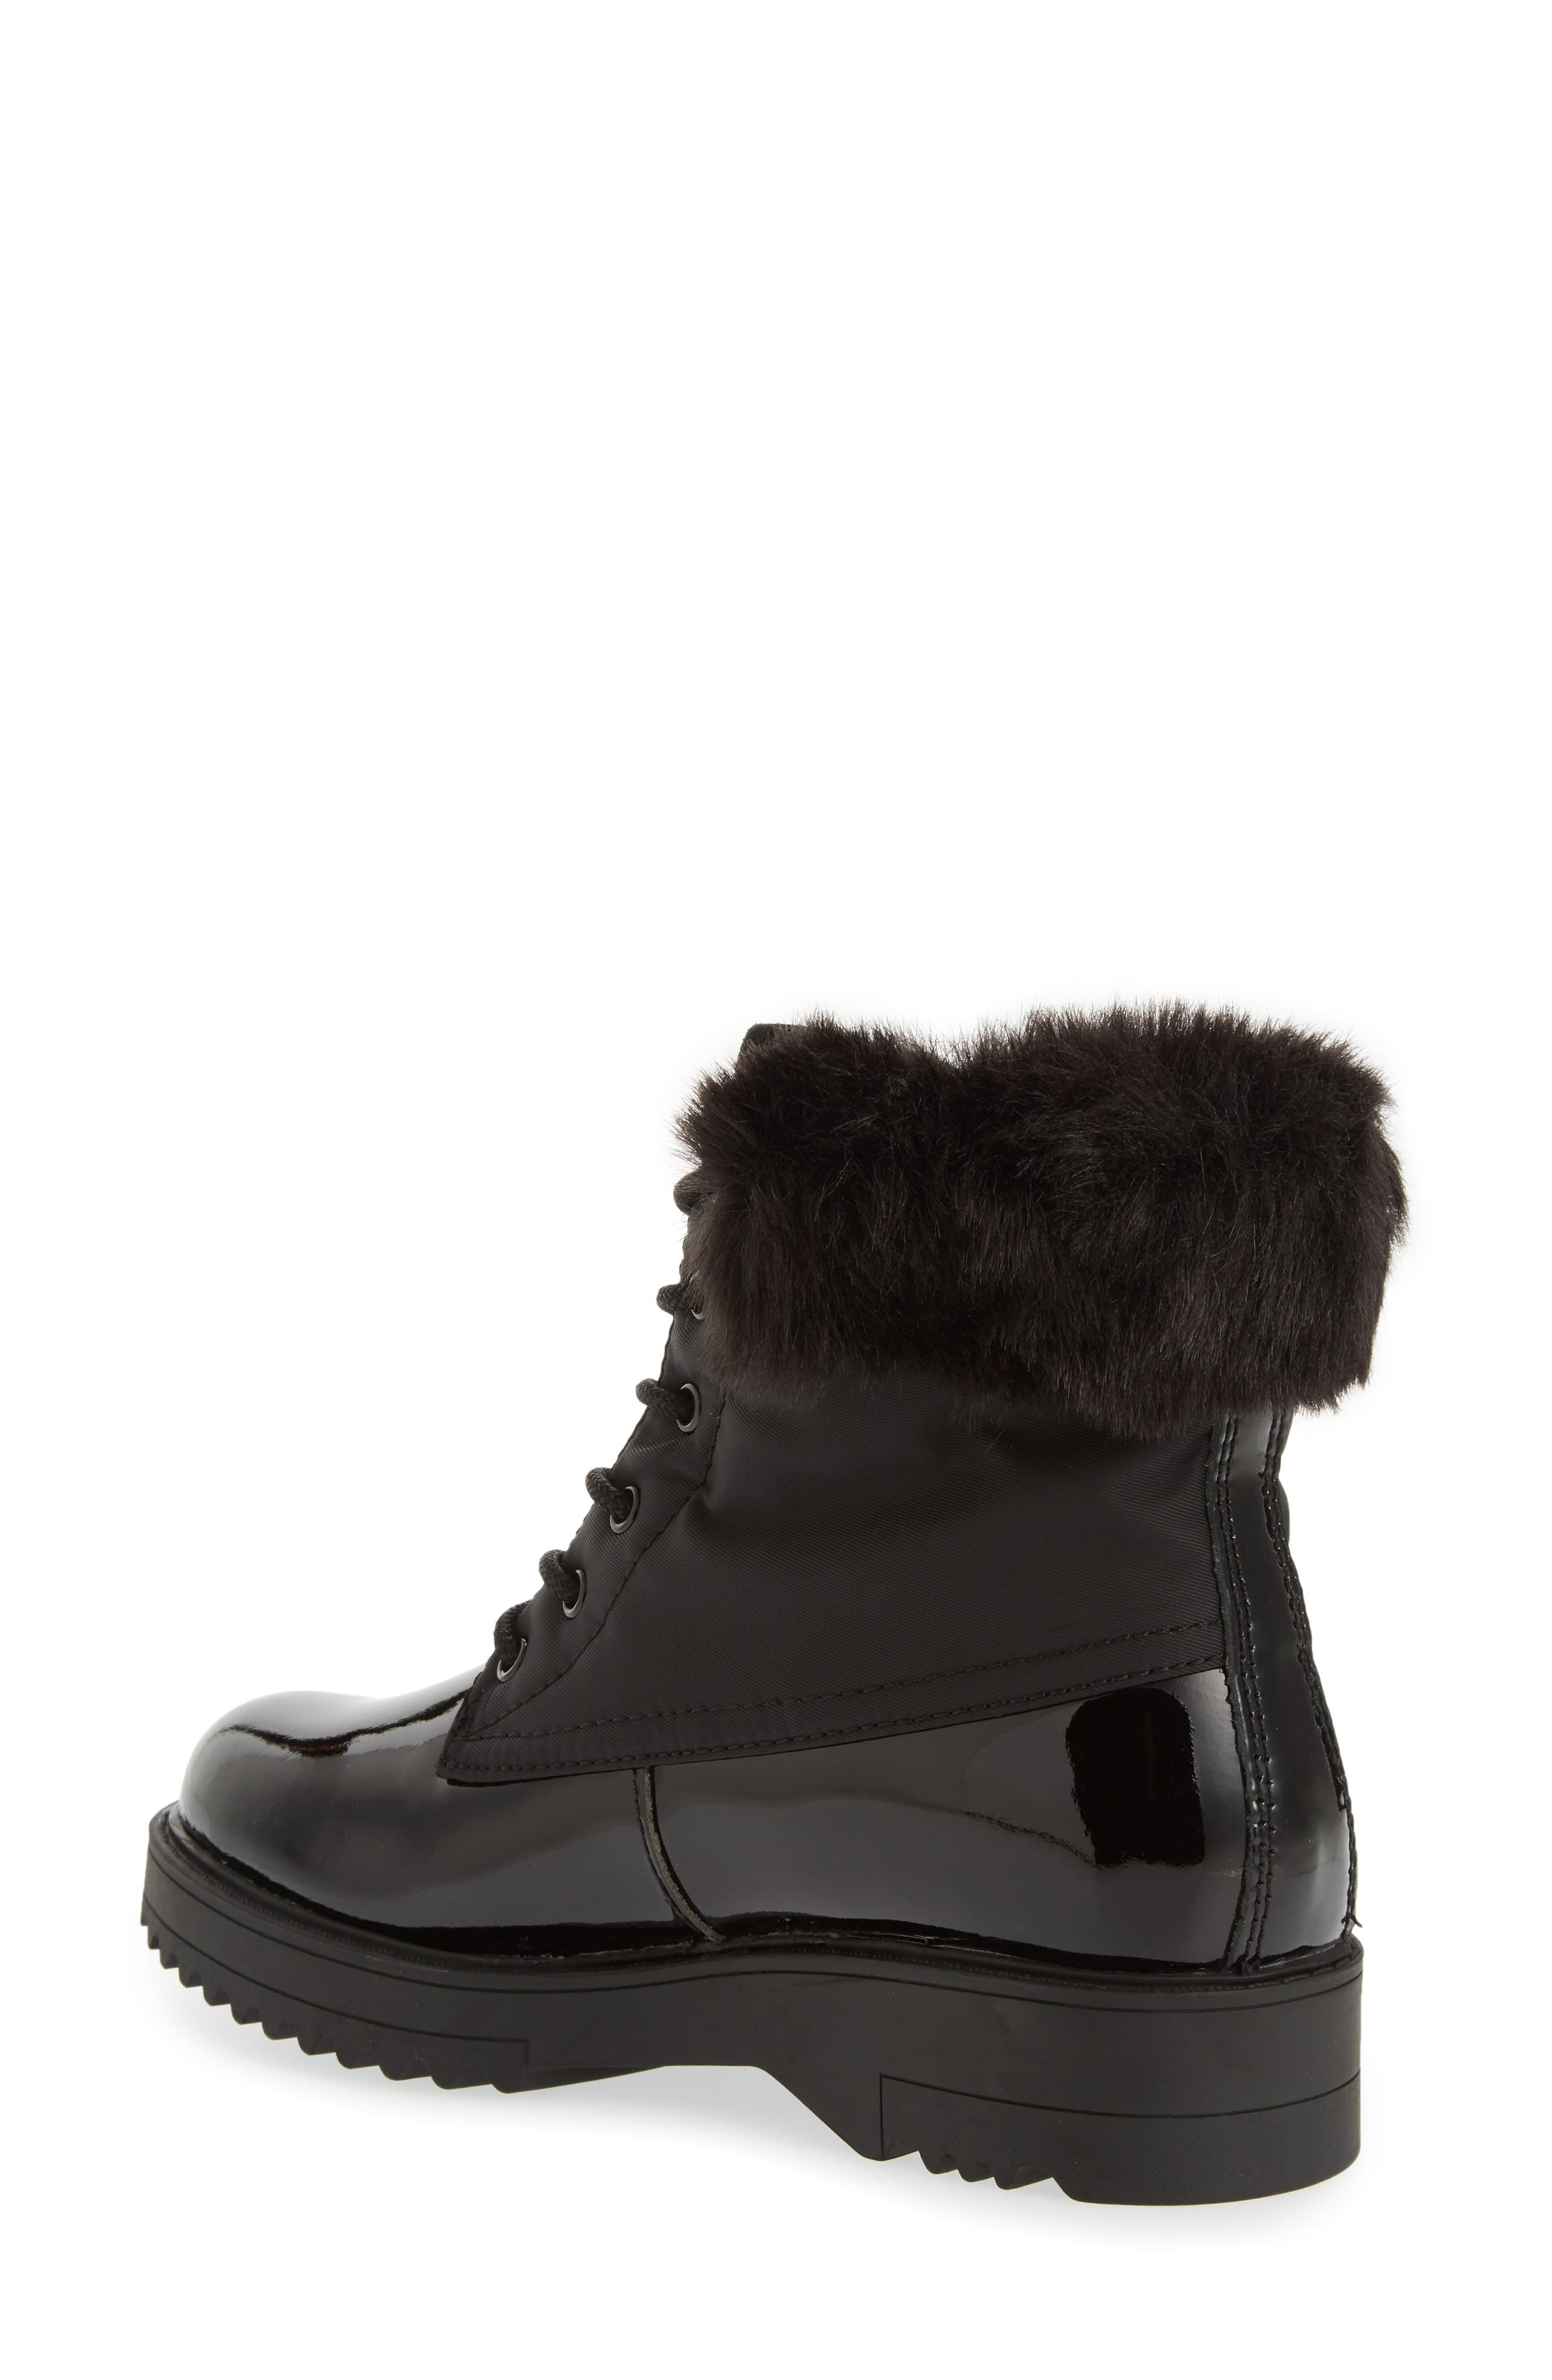 Gatineau Waterproof Insulated Boot with Faux Fur Collar,                             Alternate thumbnail 2, color,                             BLACK LEATHER